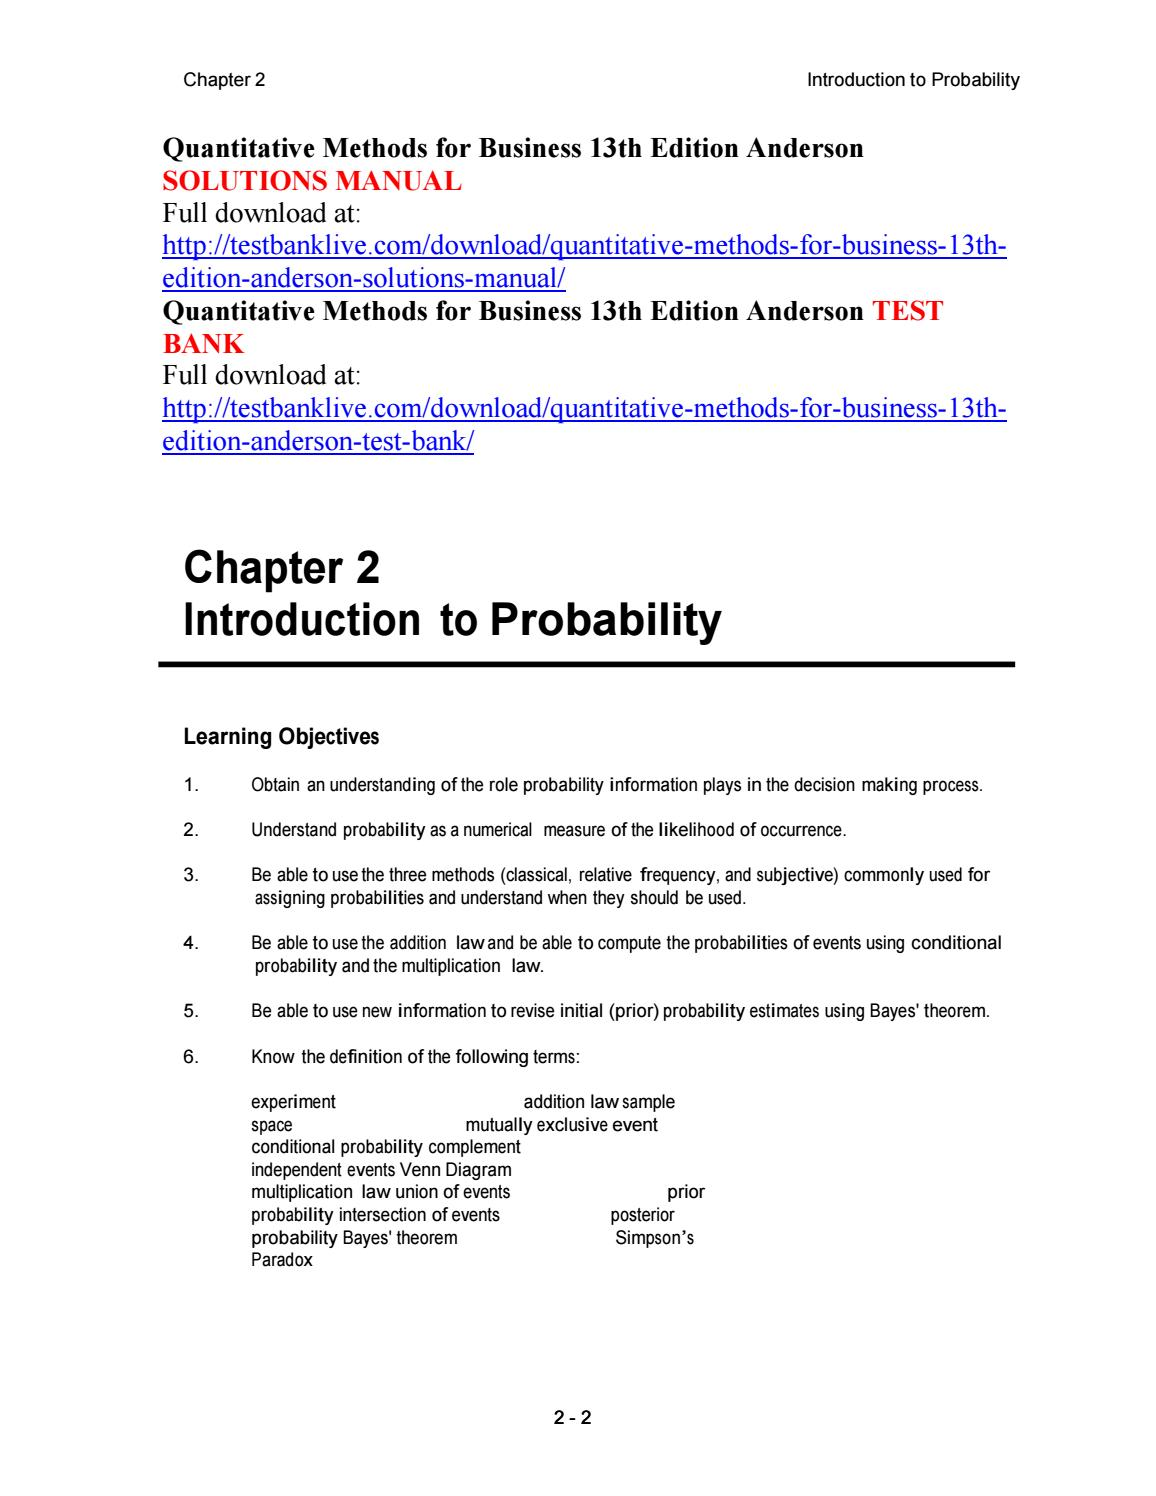 Drugs And Society 13th Edition Pdf Chapter 2